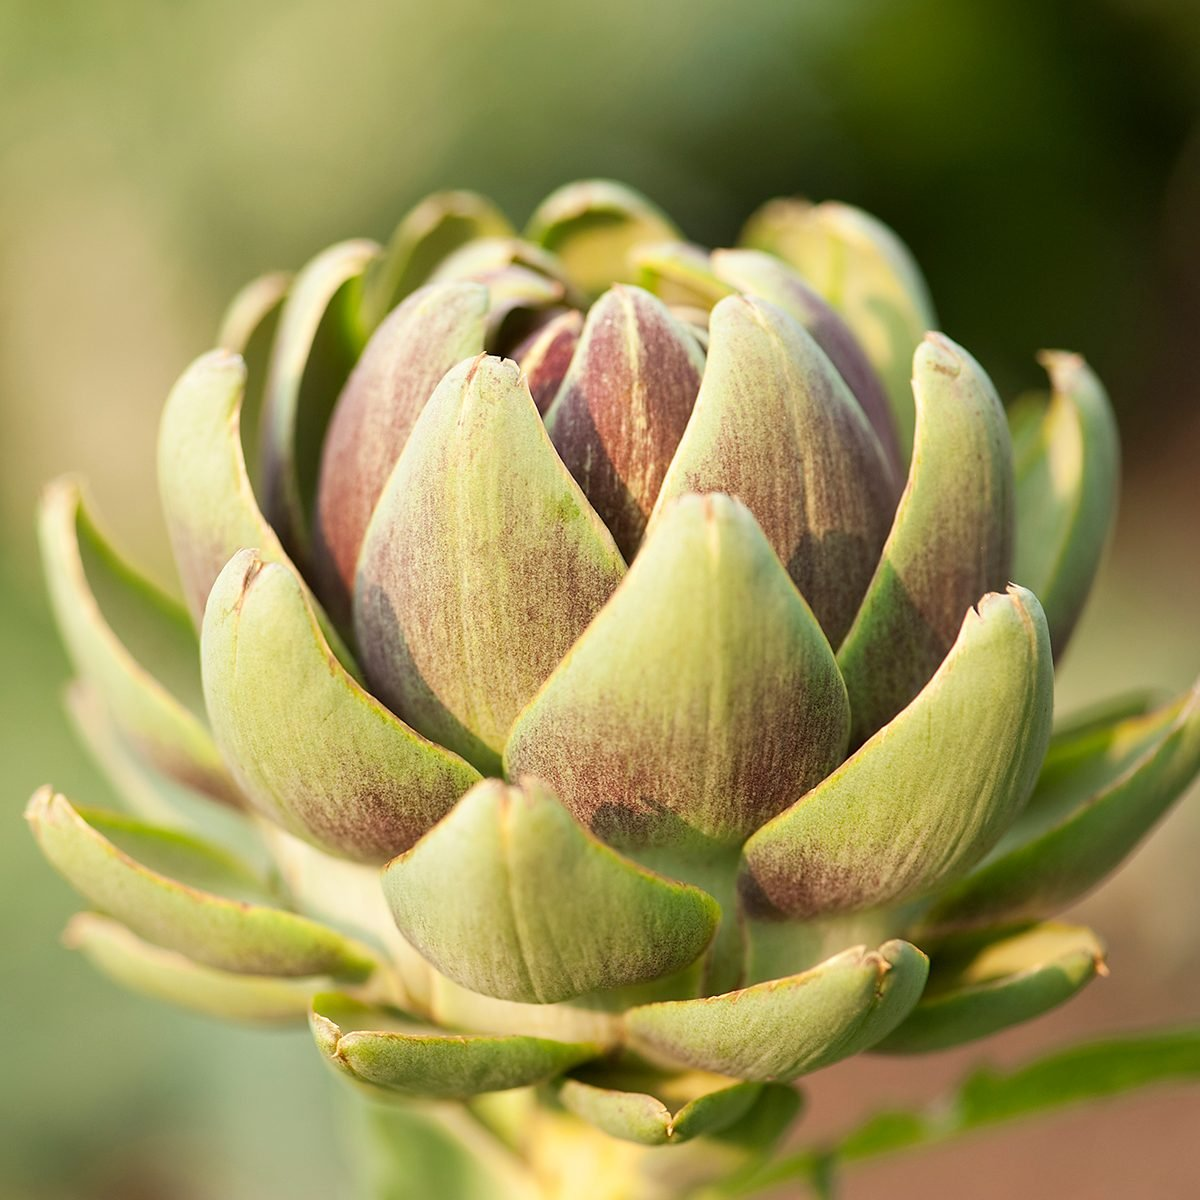 A close up of a blooming artichoke plant in the summer.